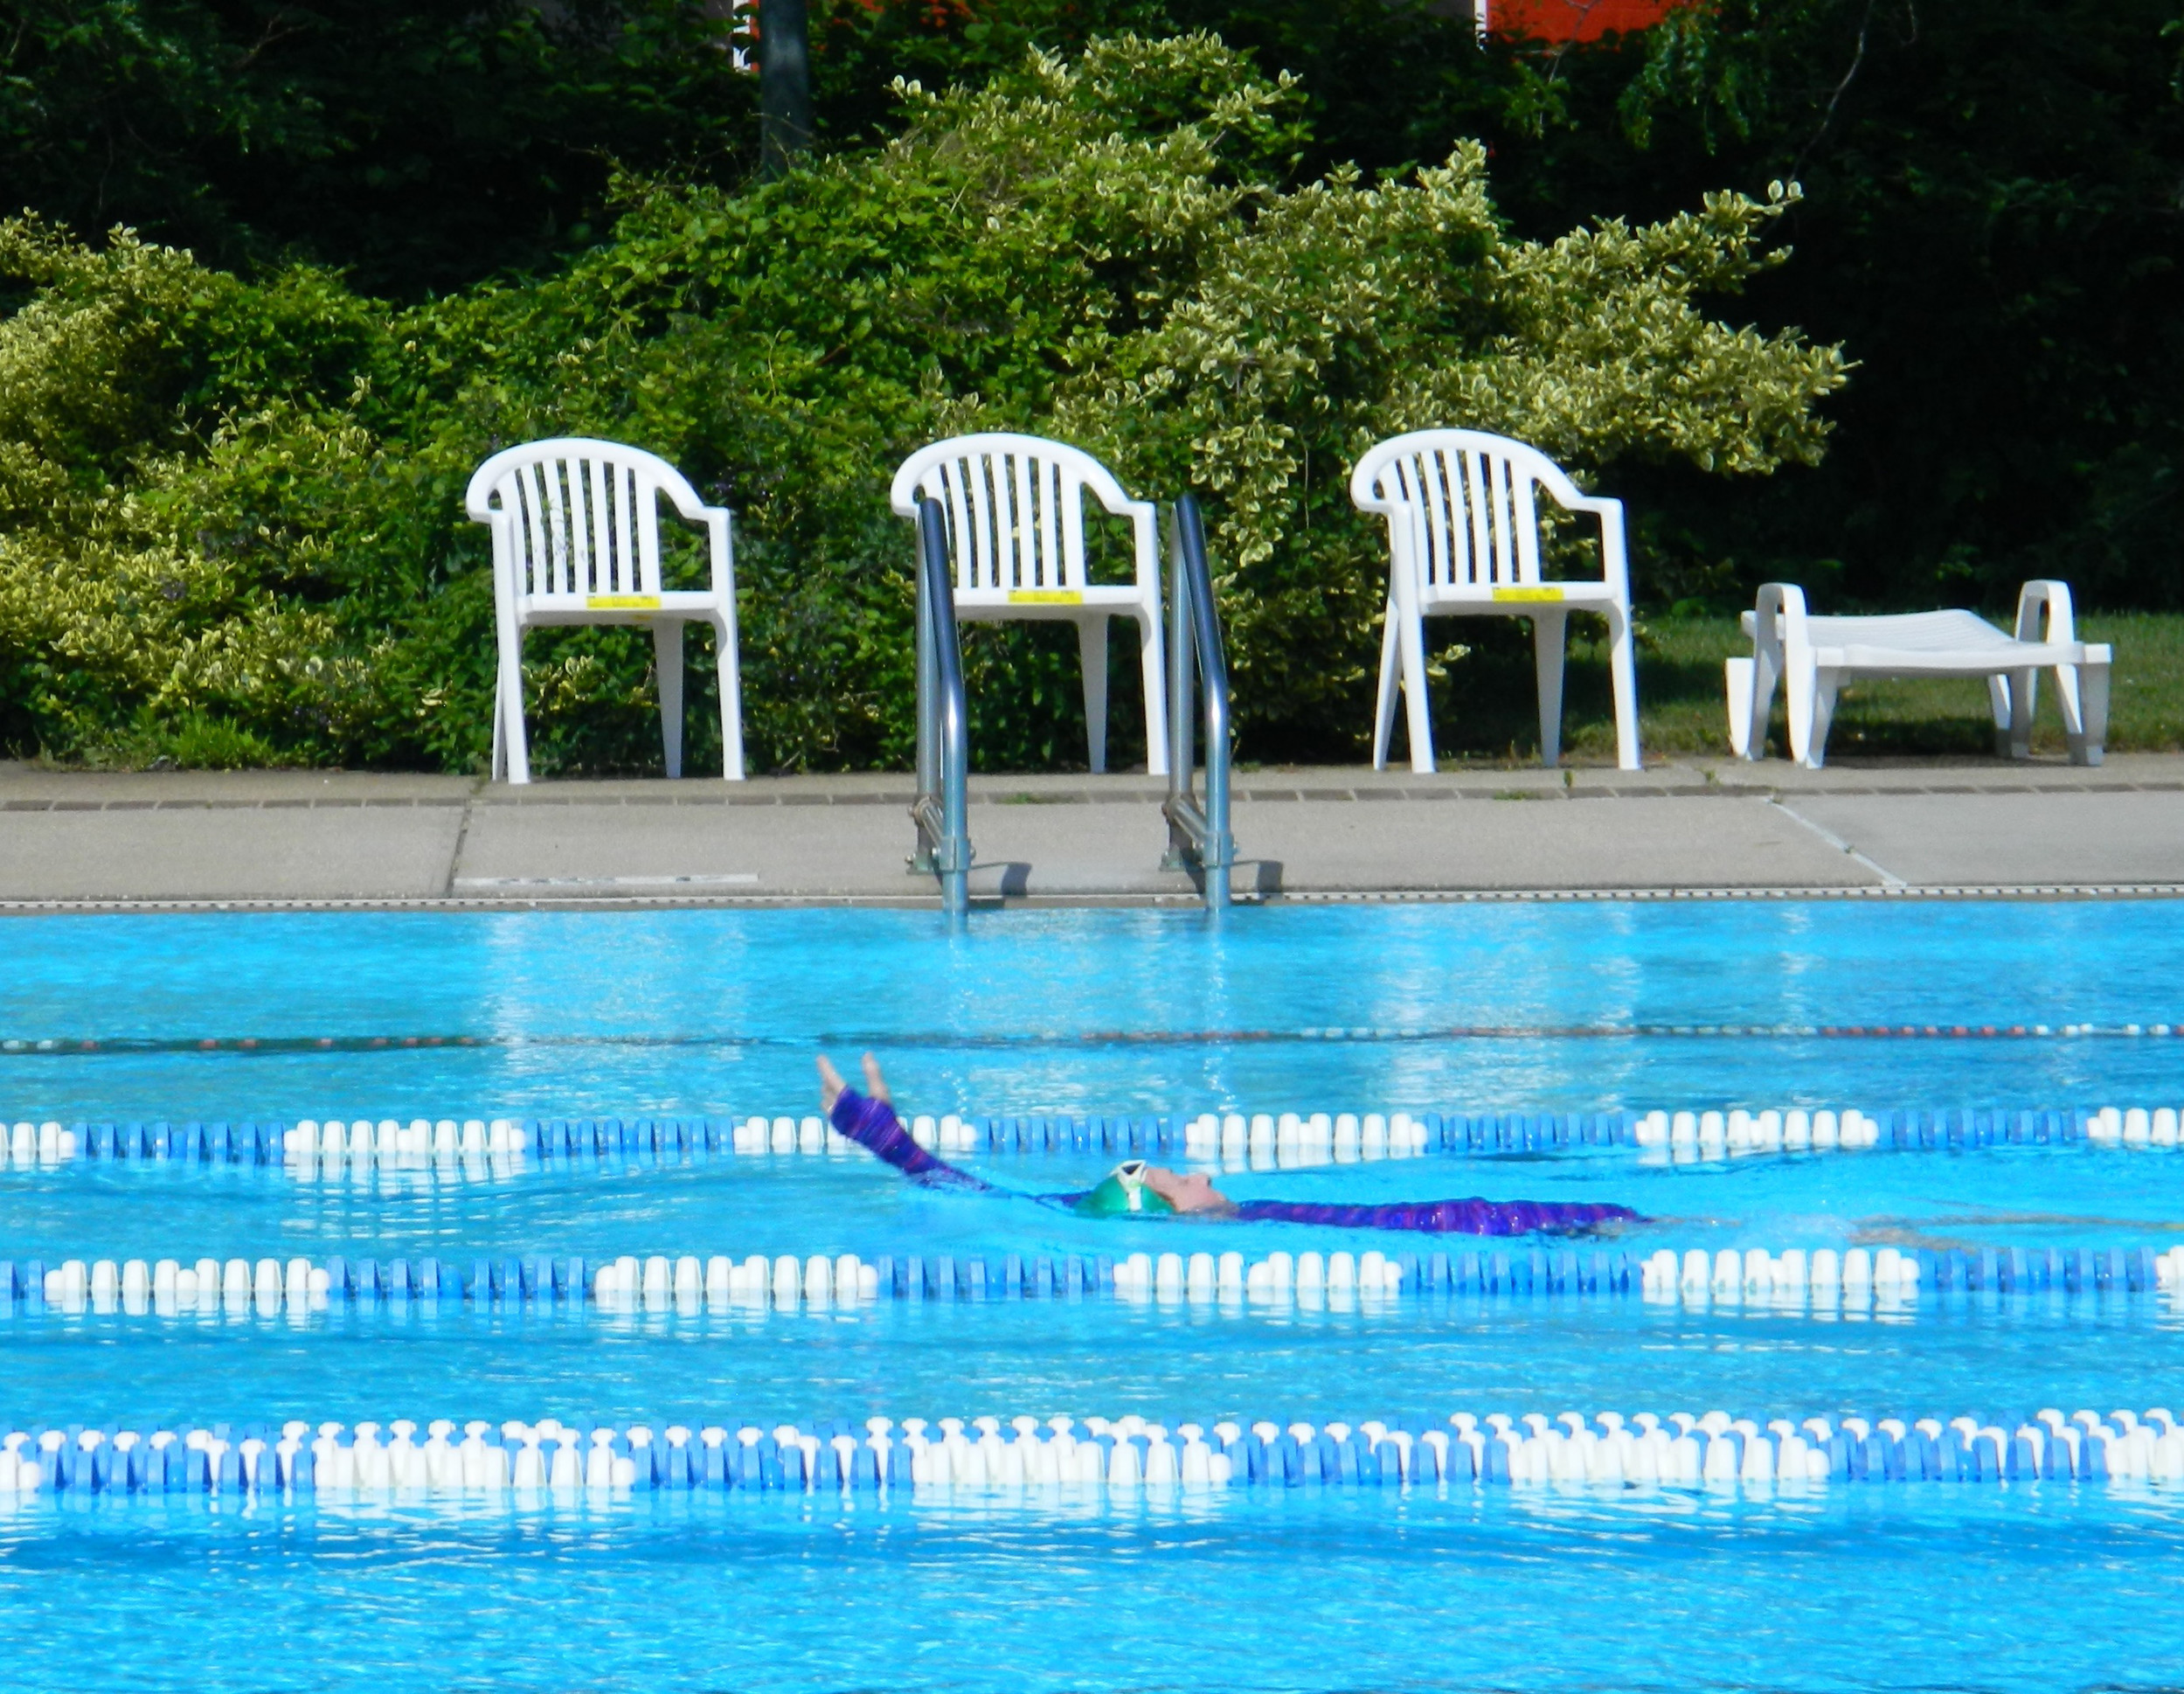 the olympic sized pool glimmered under sunlight while a woman a freeport woman enjoyed